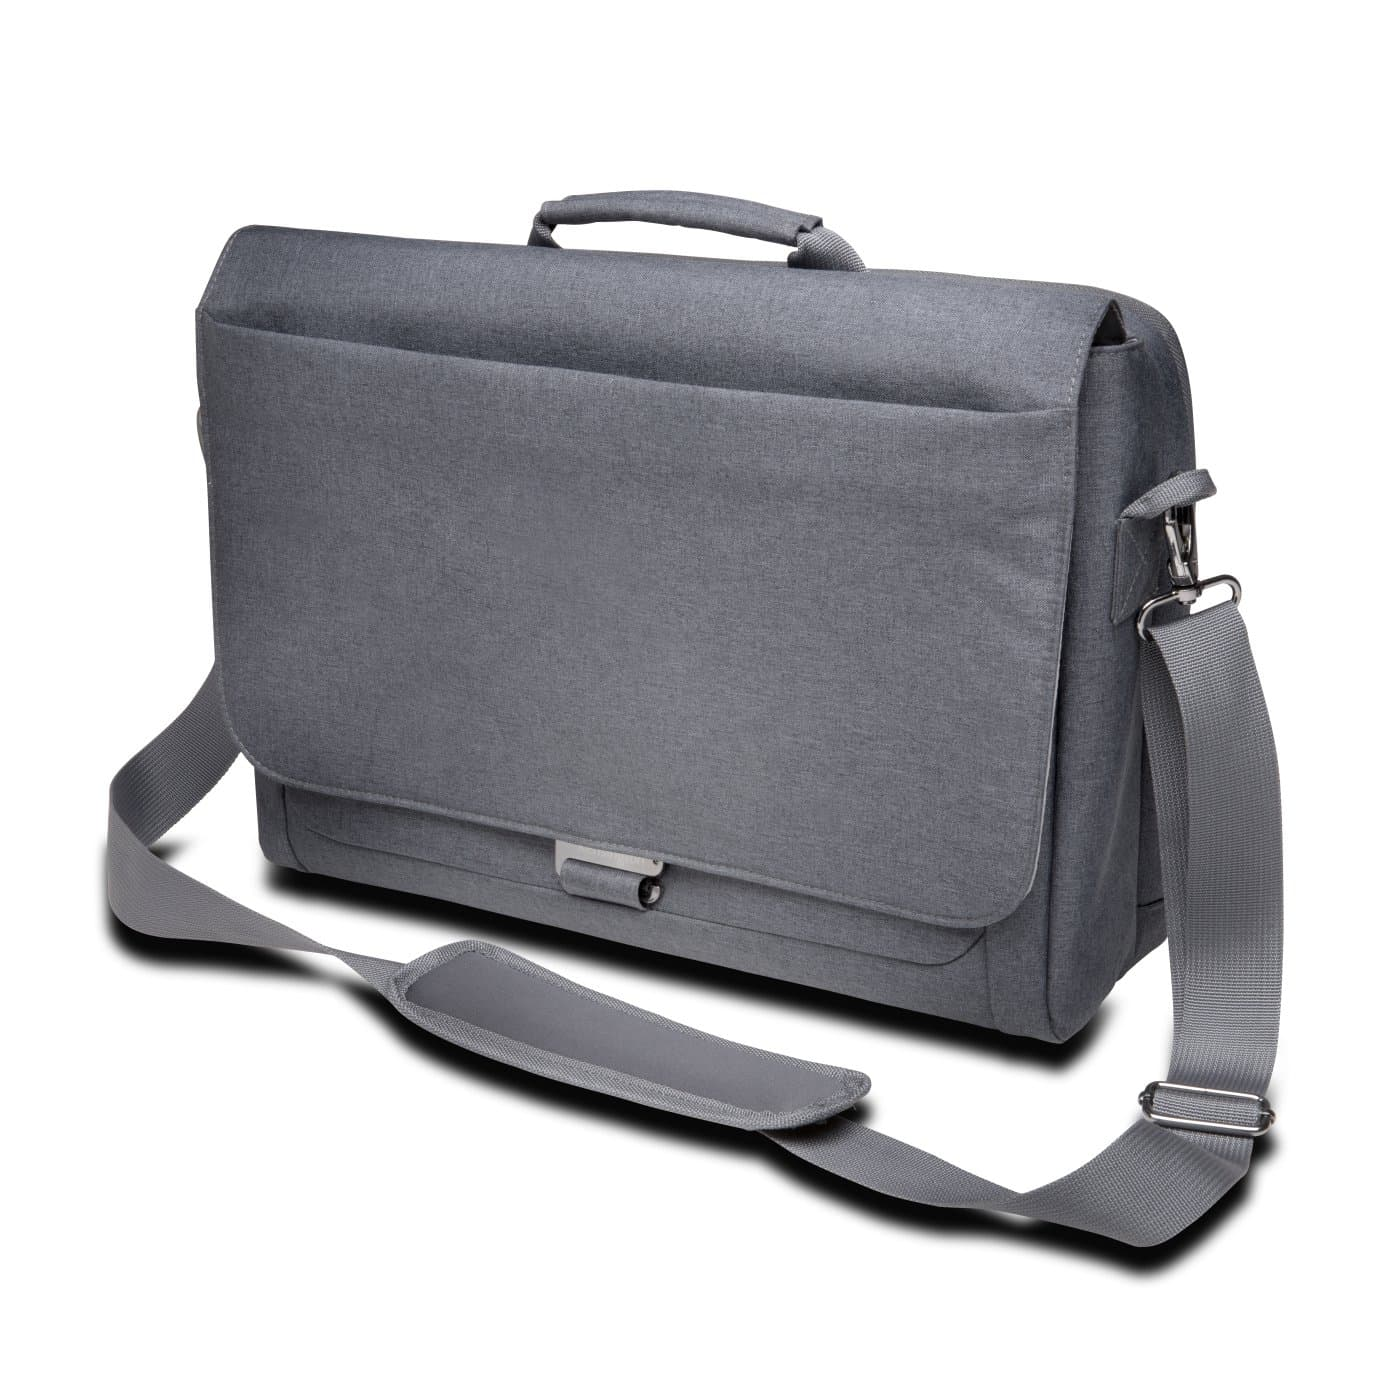 Kensington - Products - Laptop Bags - Briefcases / Messengers ...